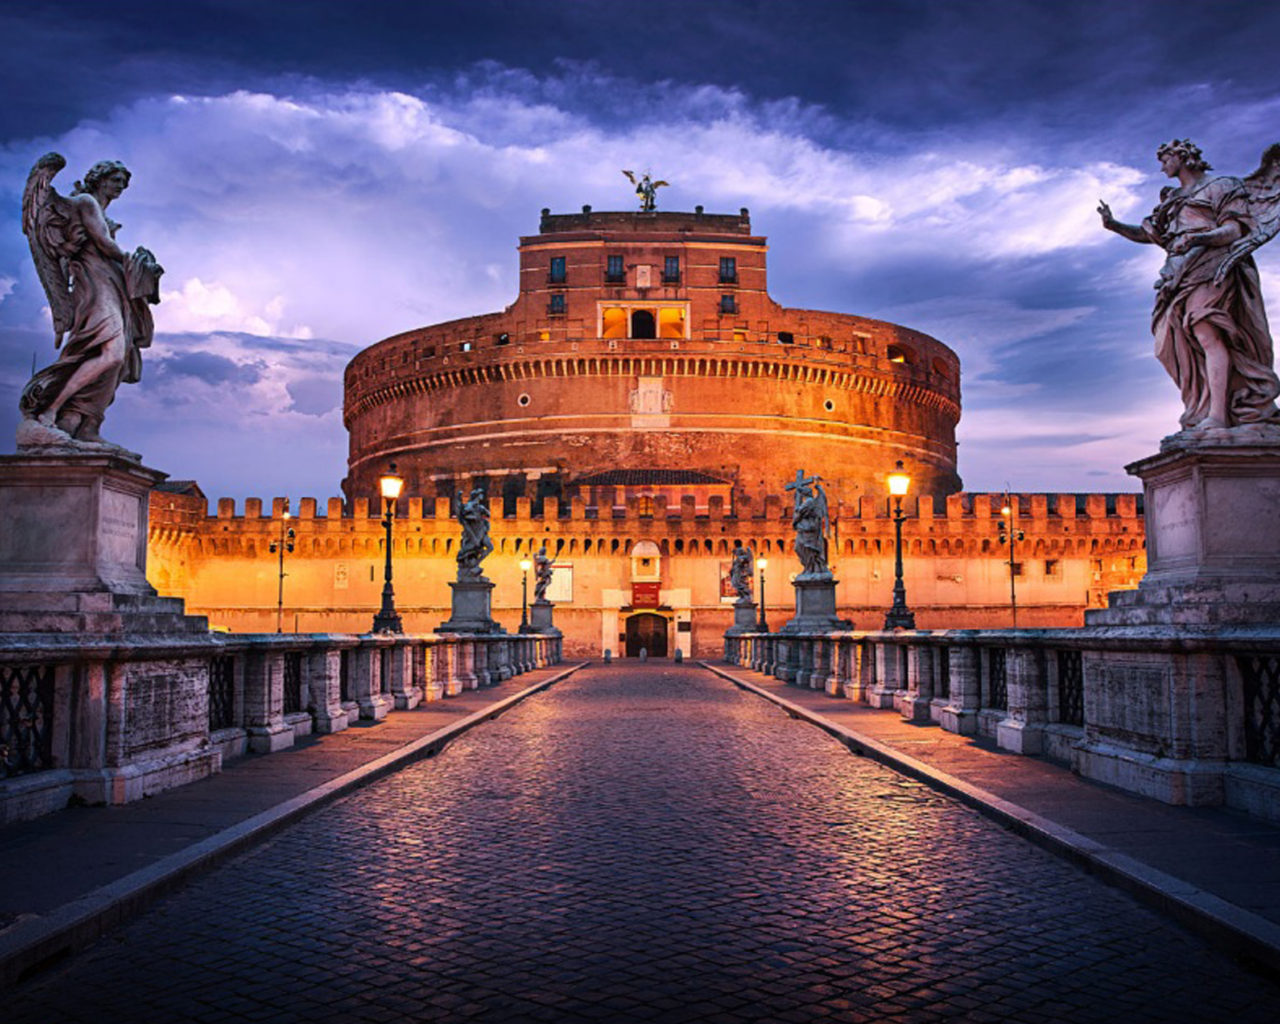 Magic Wallpaper Iphone X Castel Sant Angelo Is Towering Cylindrical Building In